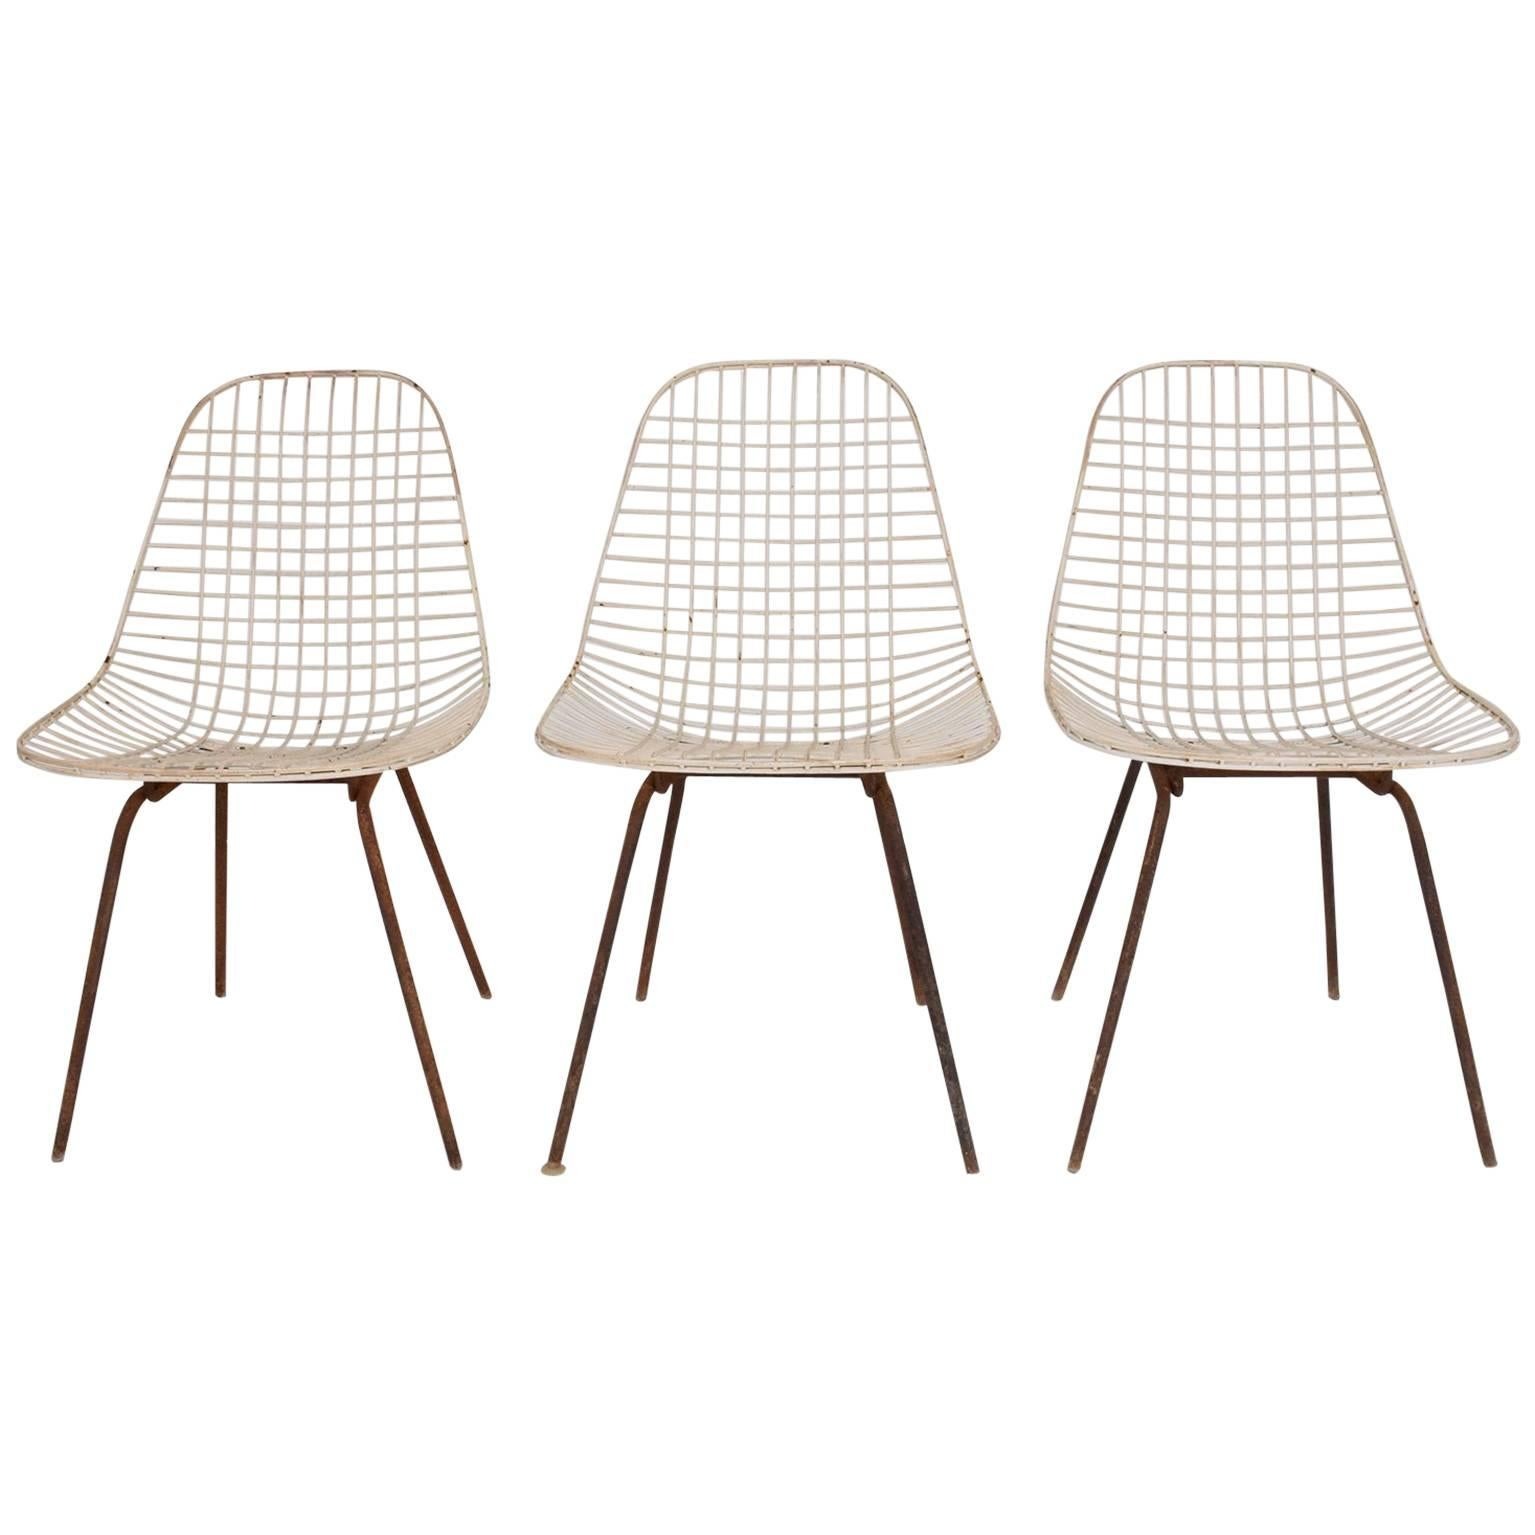 Set of Three Wire Chair DKX 5 by Ray & Charles Eames Designed in 1951